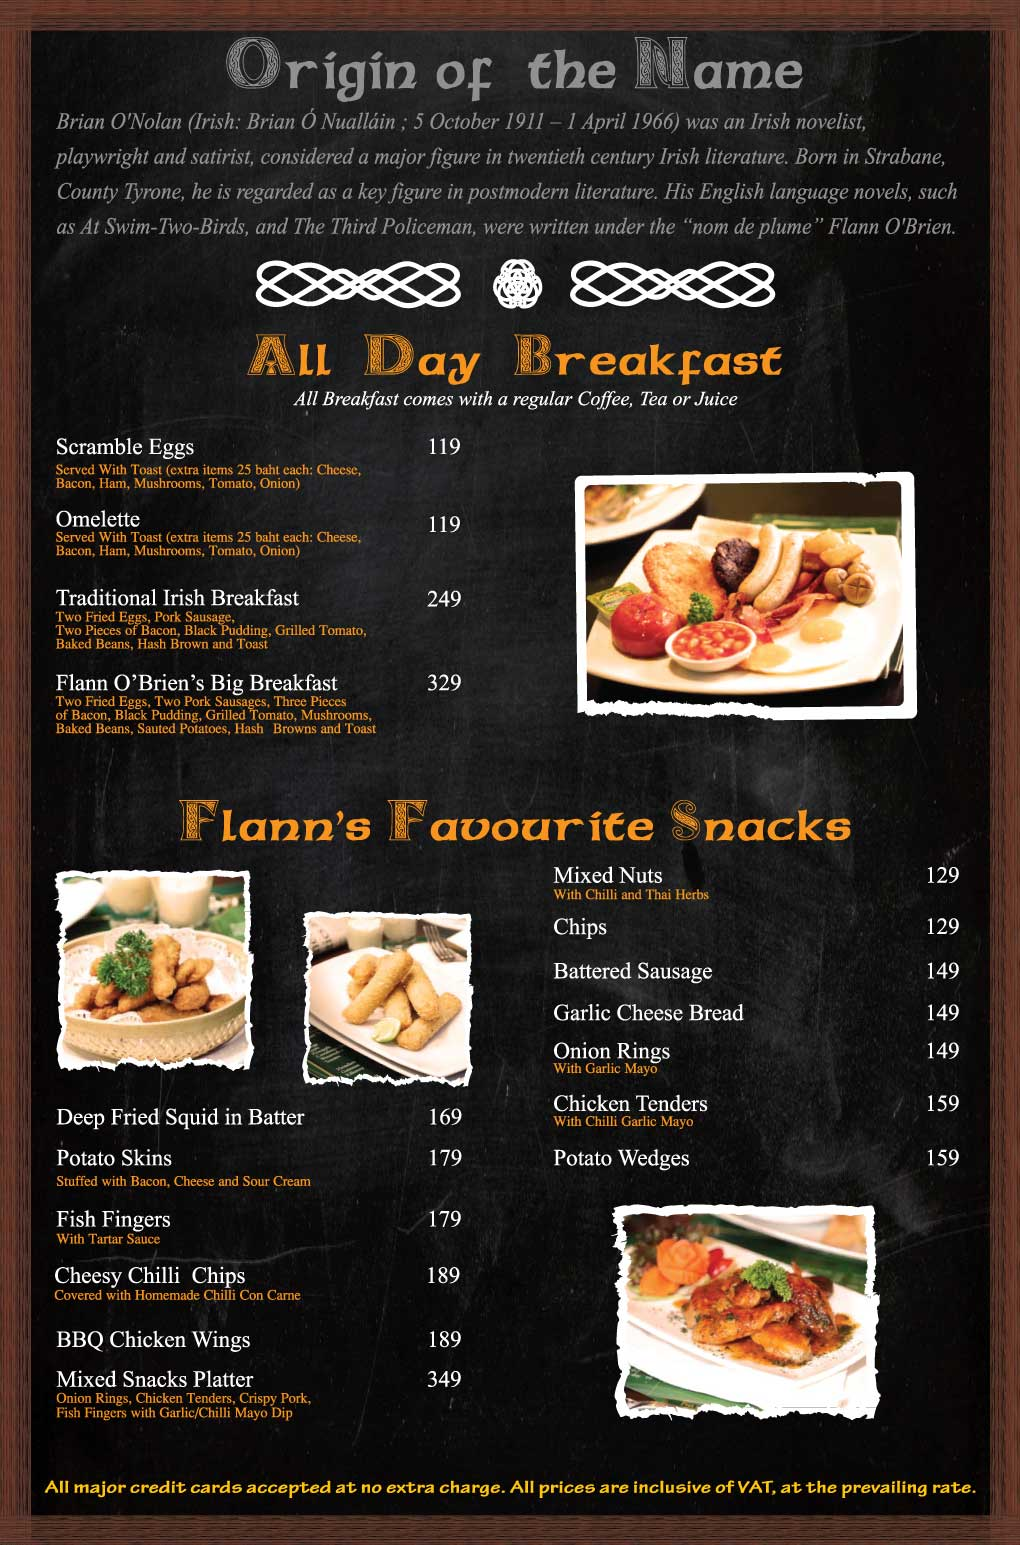 Flann Impact Food Menu Breakfast and Snacks